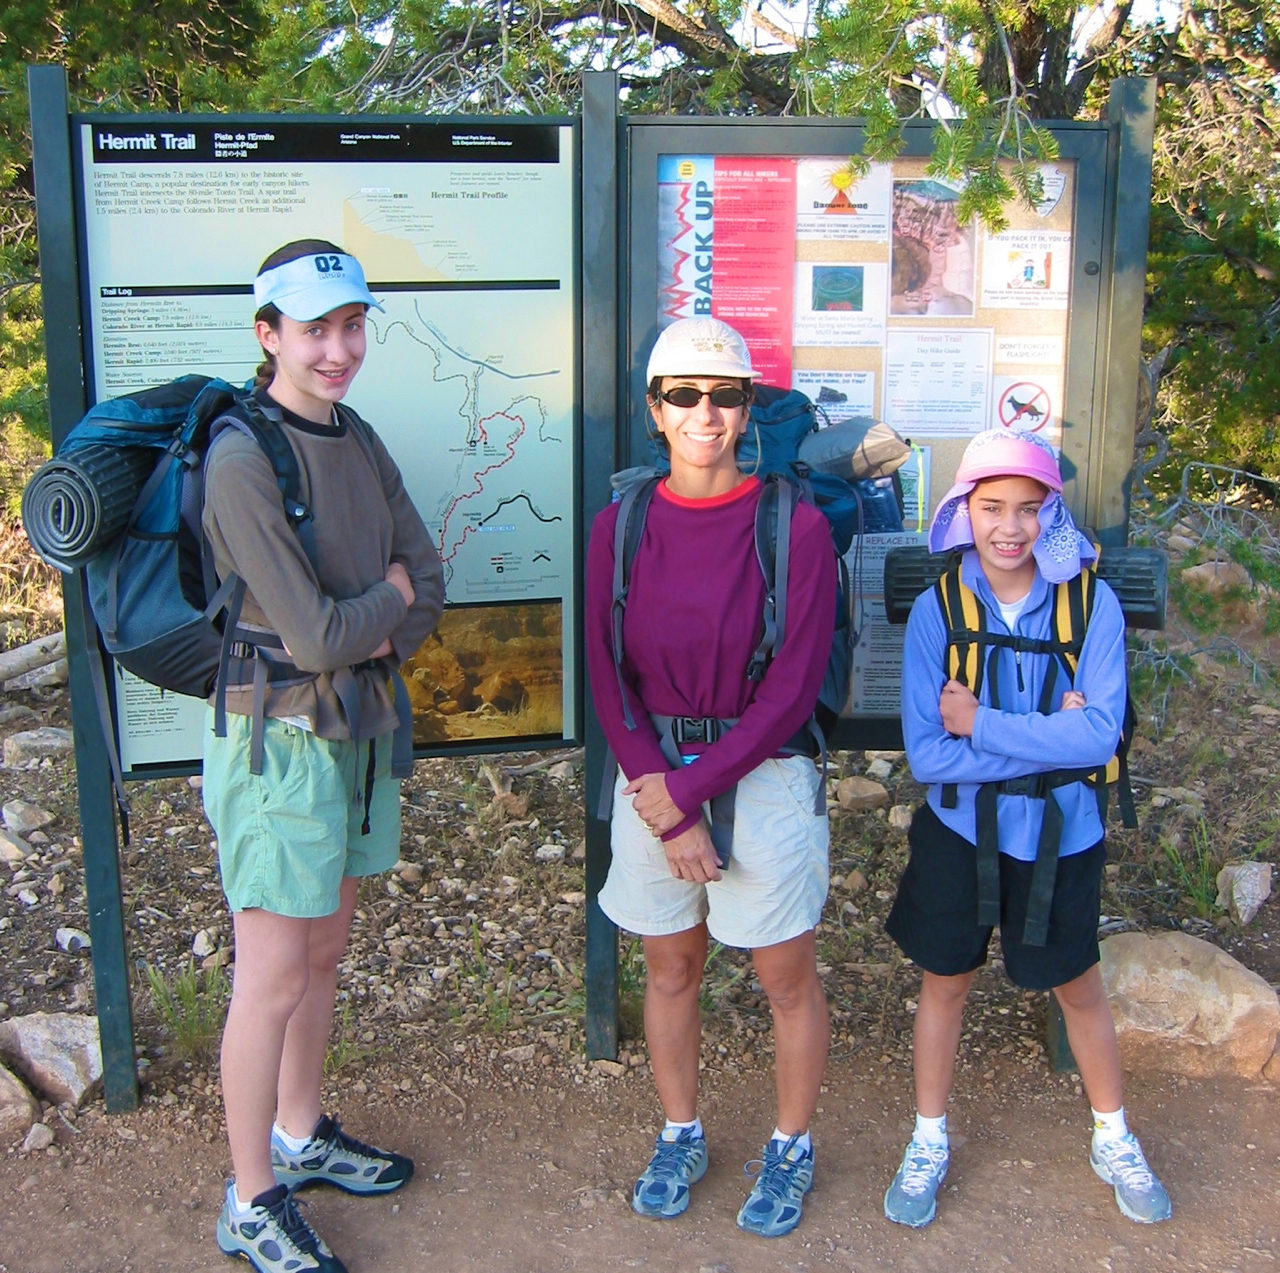 Getting started at the top of the Hermit Trail. We travelled pretty light for our 5 day trip, as evidenced by Megan's pack (on the left).